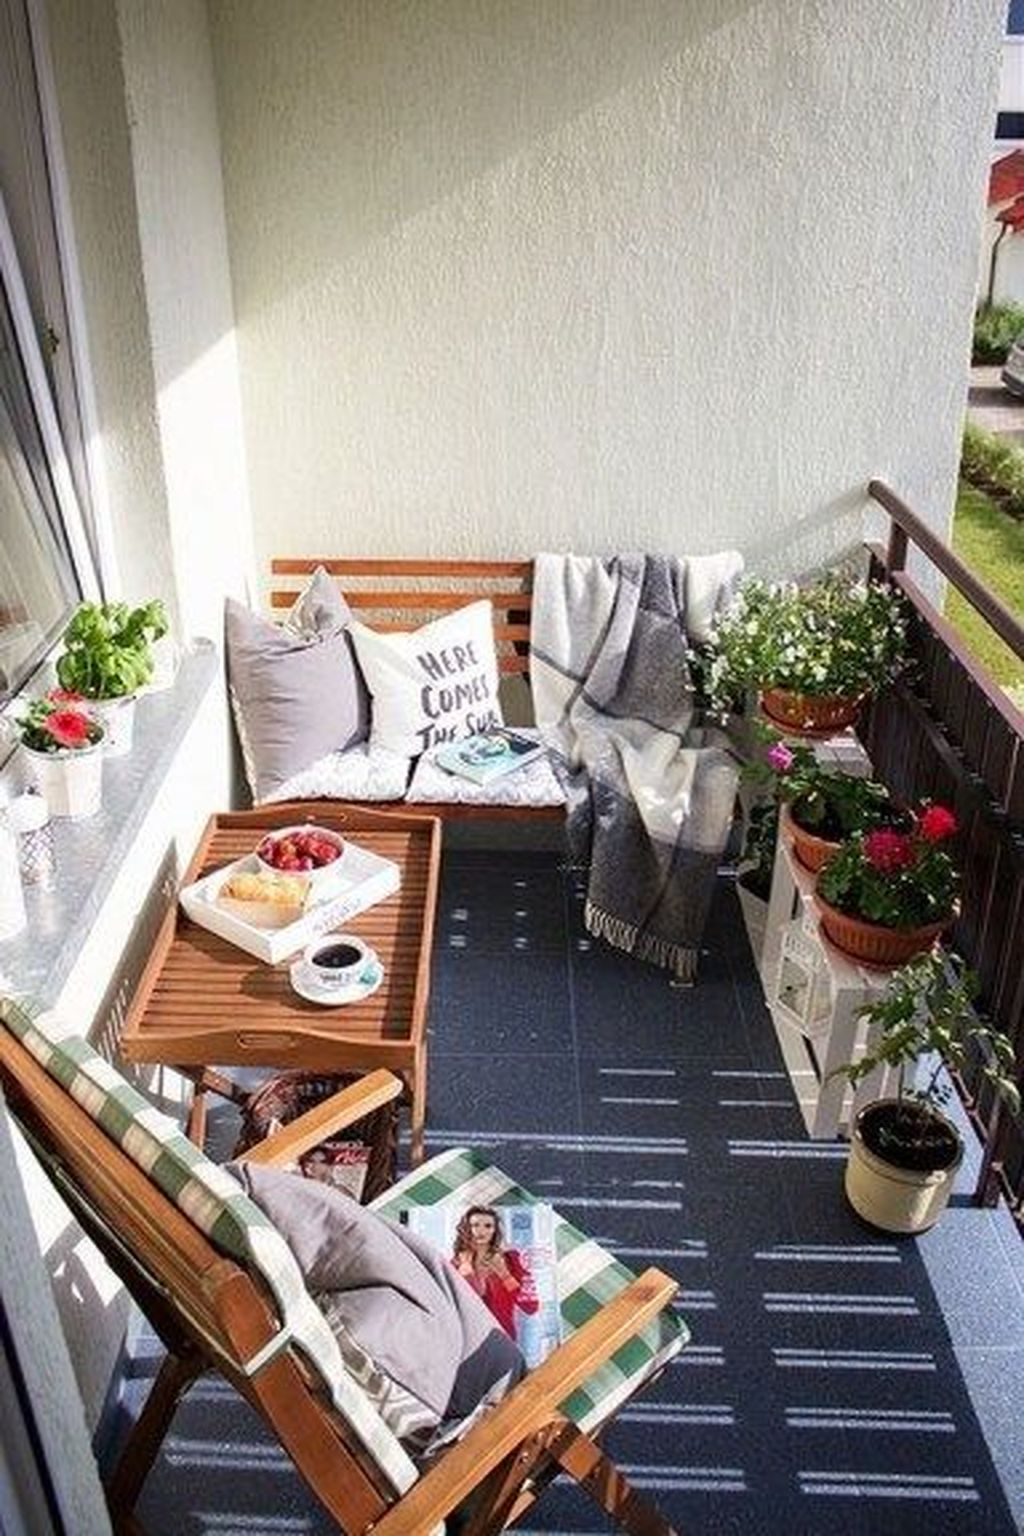 Enchanting Balcony Decoration Ideas For Apartment For A Cleaner Look 29